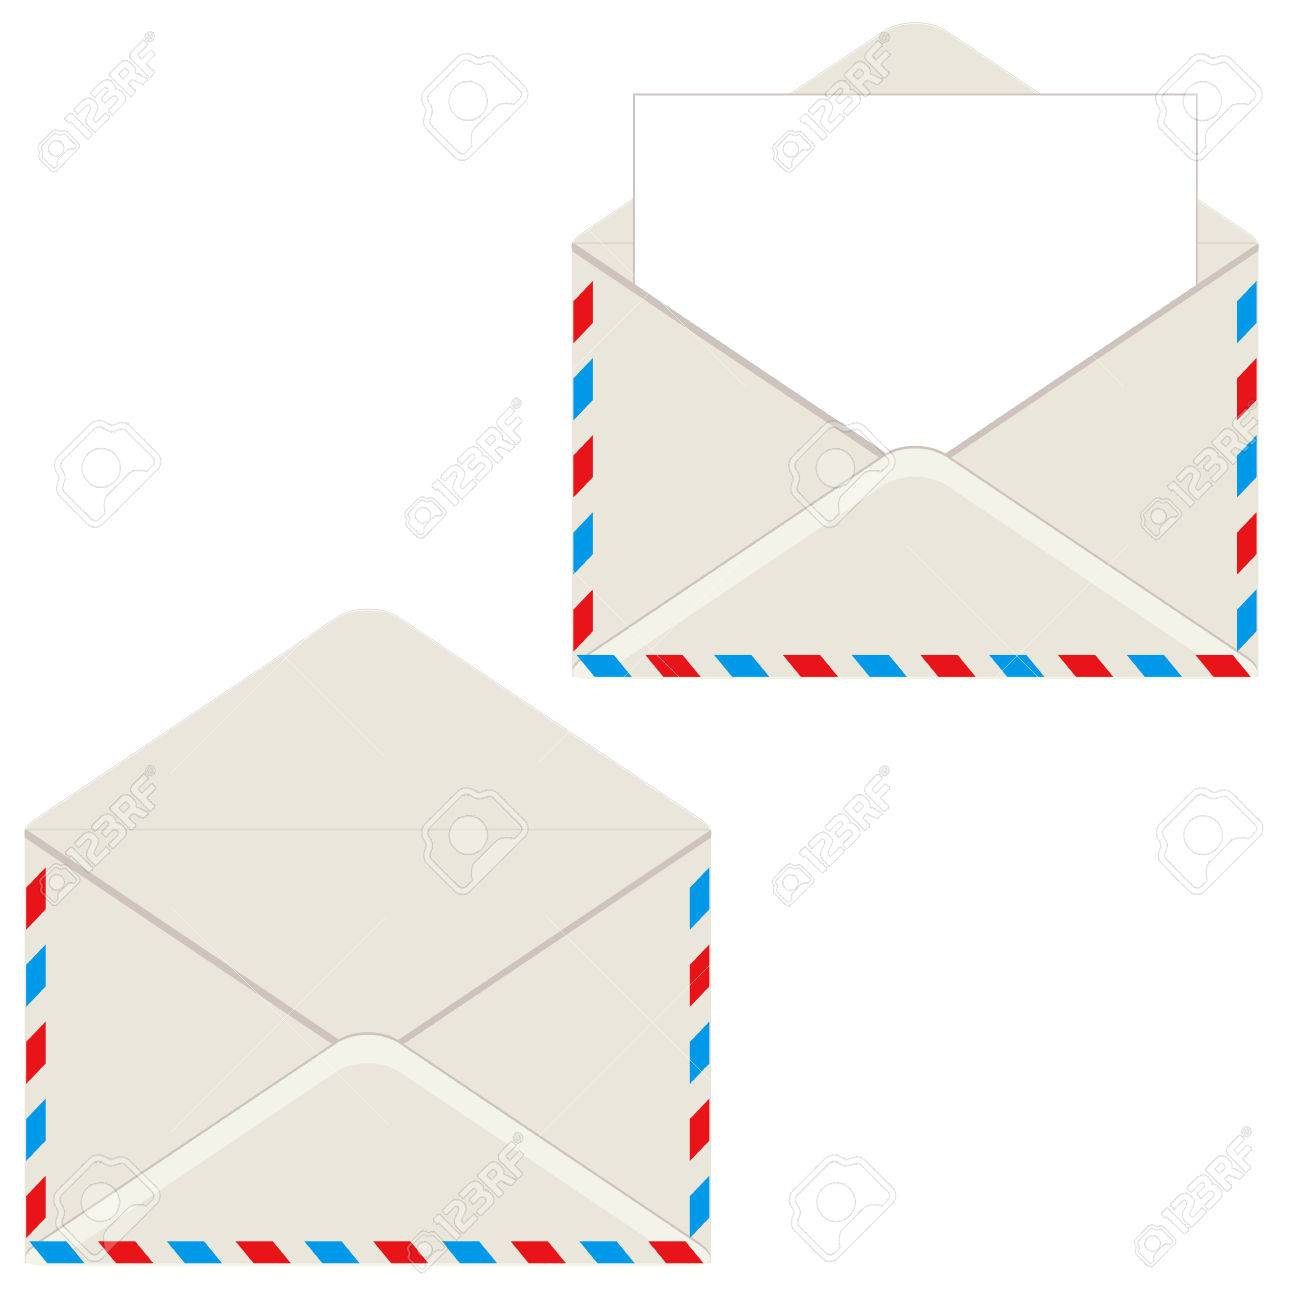 open envelope with letter. vector illustration. element for design